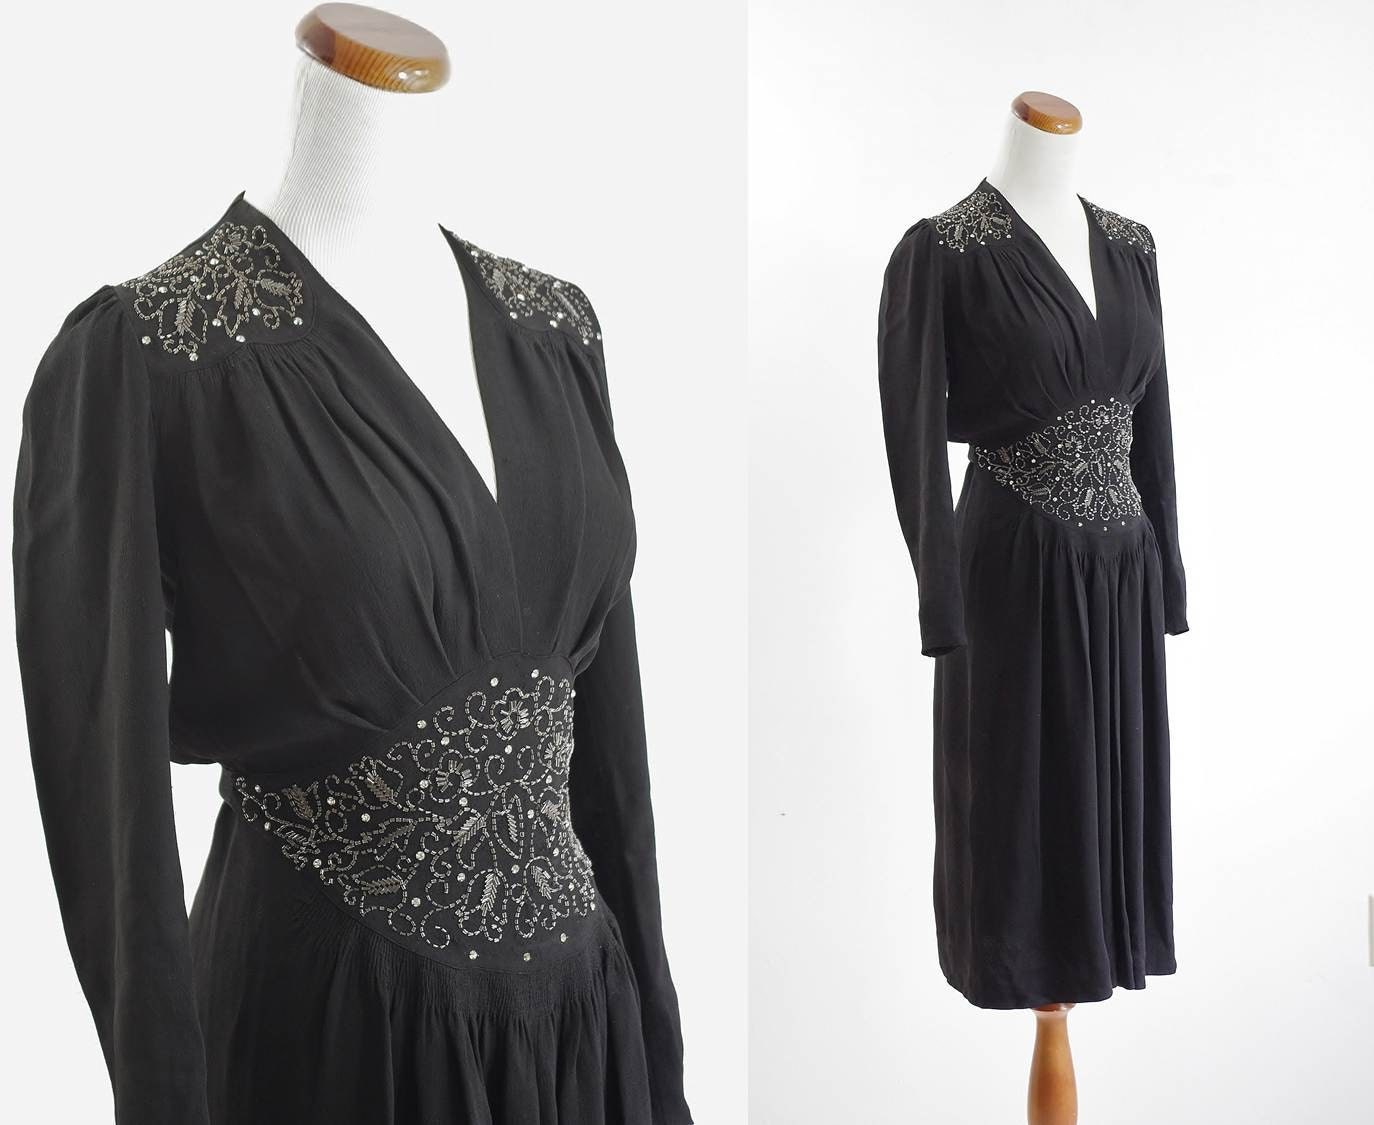 40s Dress Black Beaded Dress 1940s Evening Dress by mituvintage